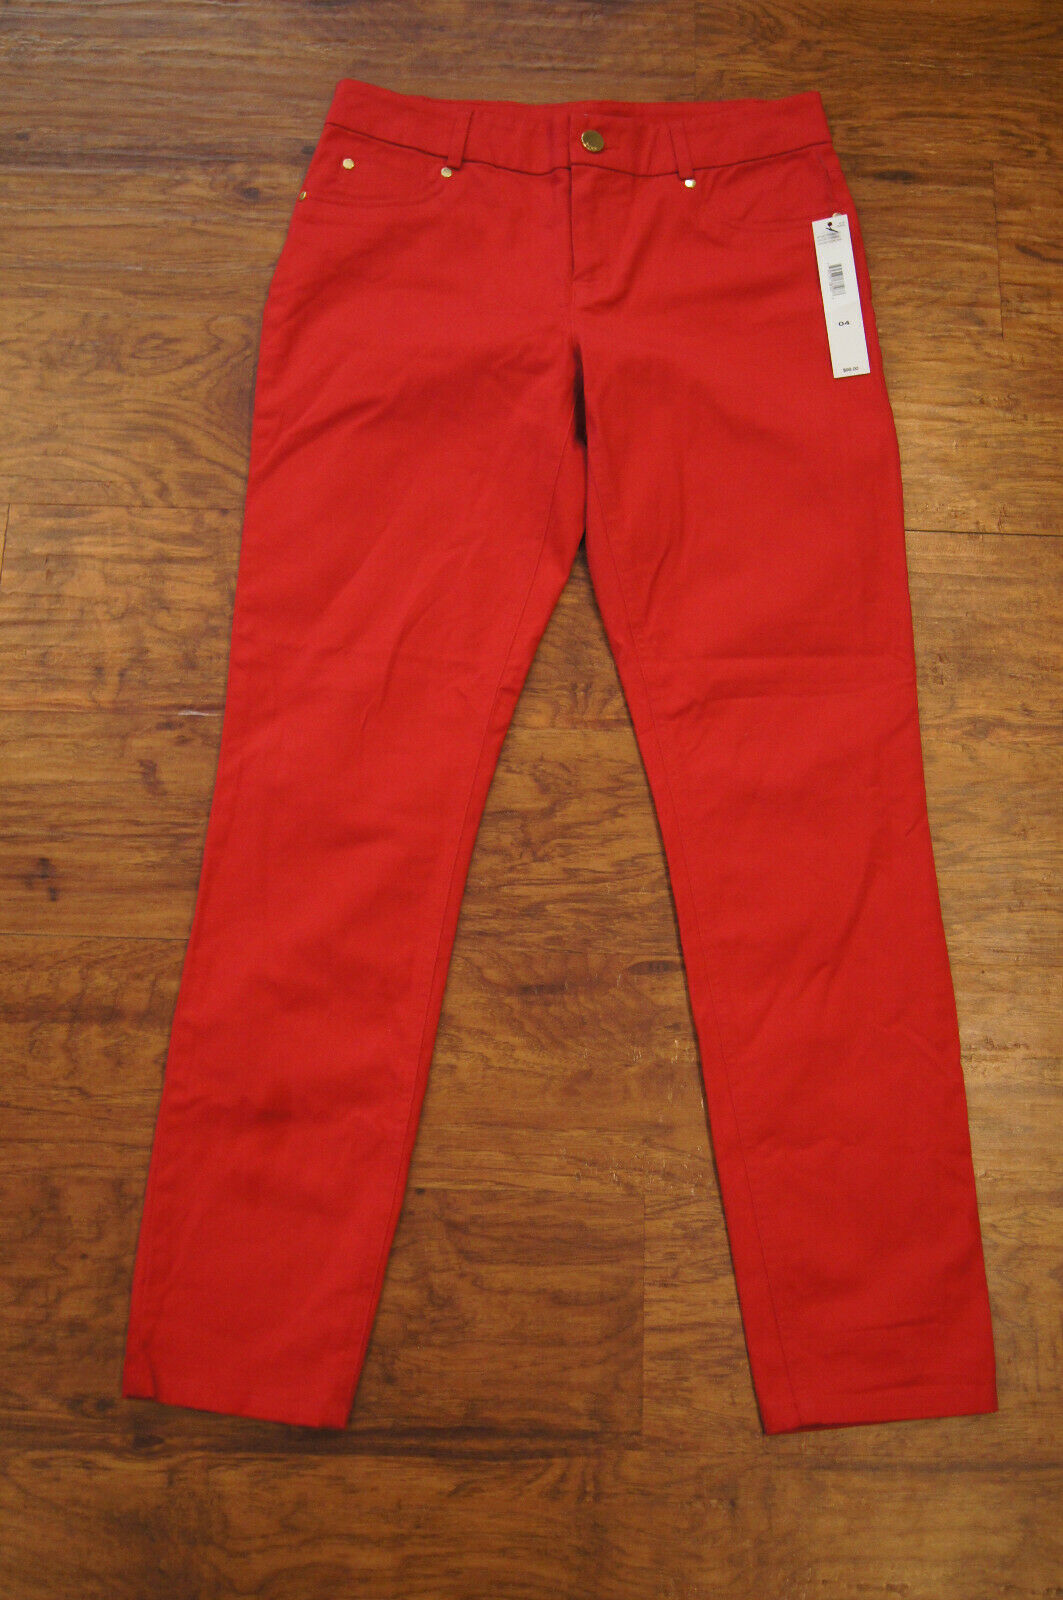 DKNY Womens Casual straight leg pants size 4 Crimson Red NWT